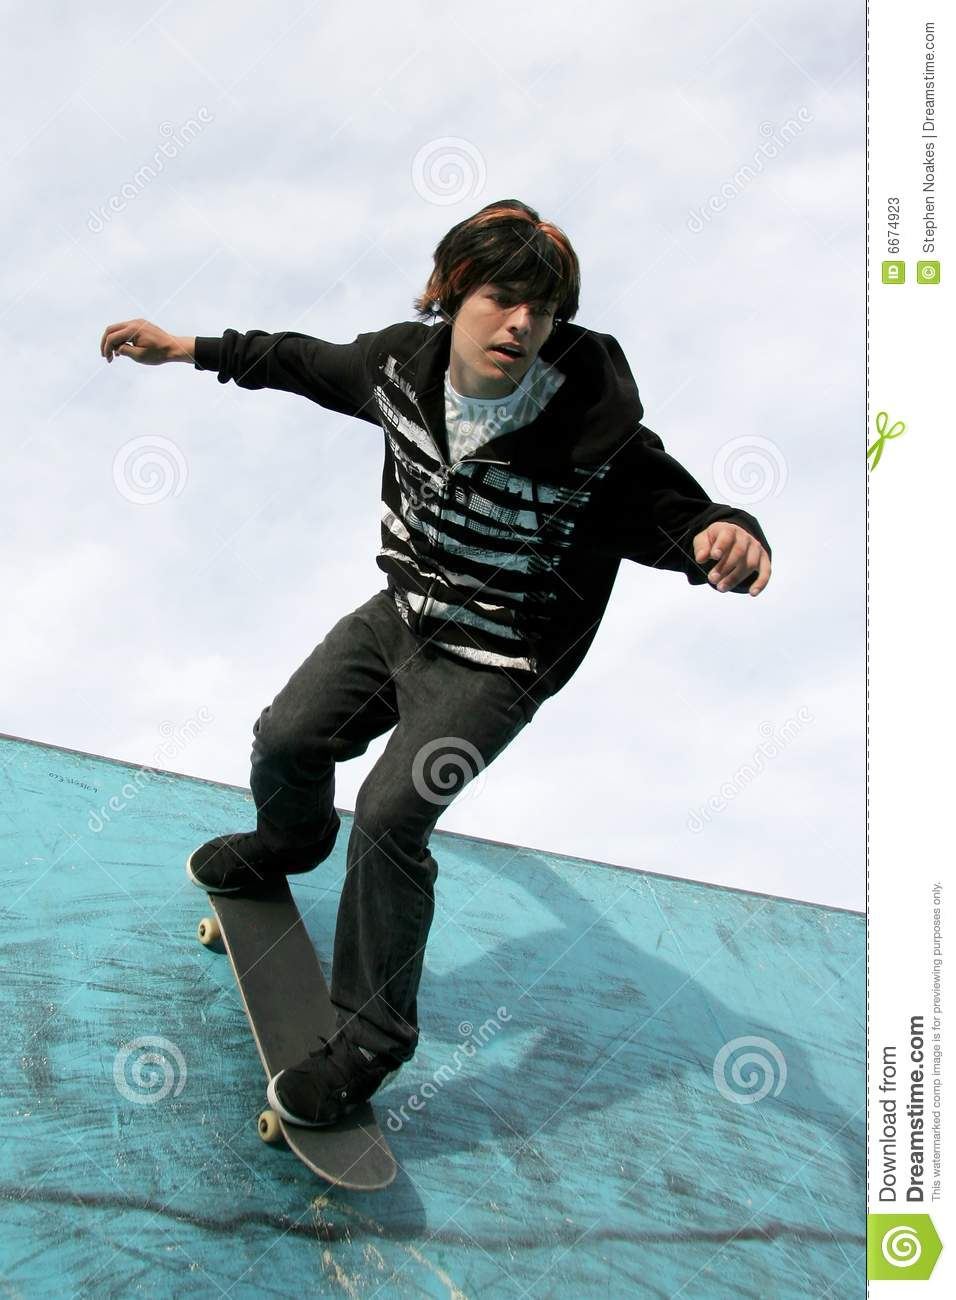 Skater Boy Stock Photos - Image: 6674923